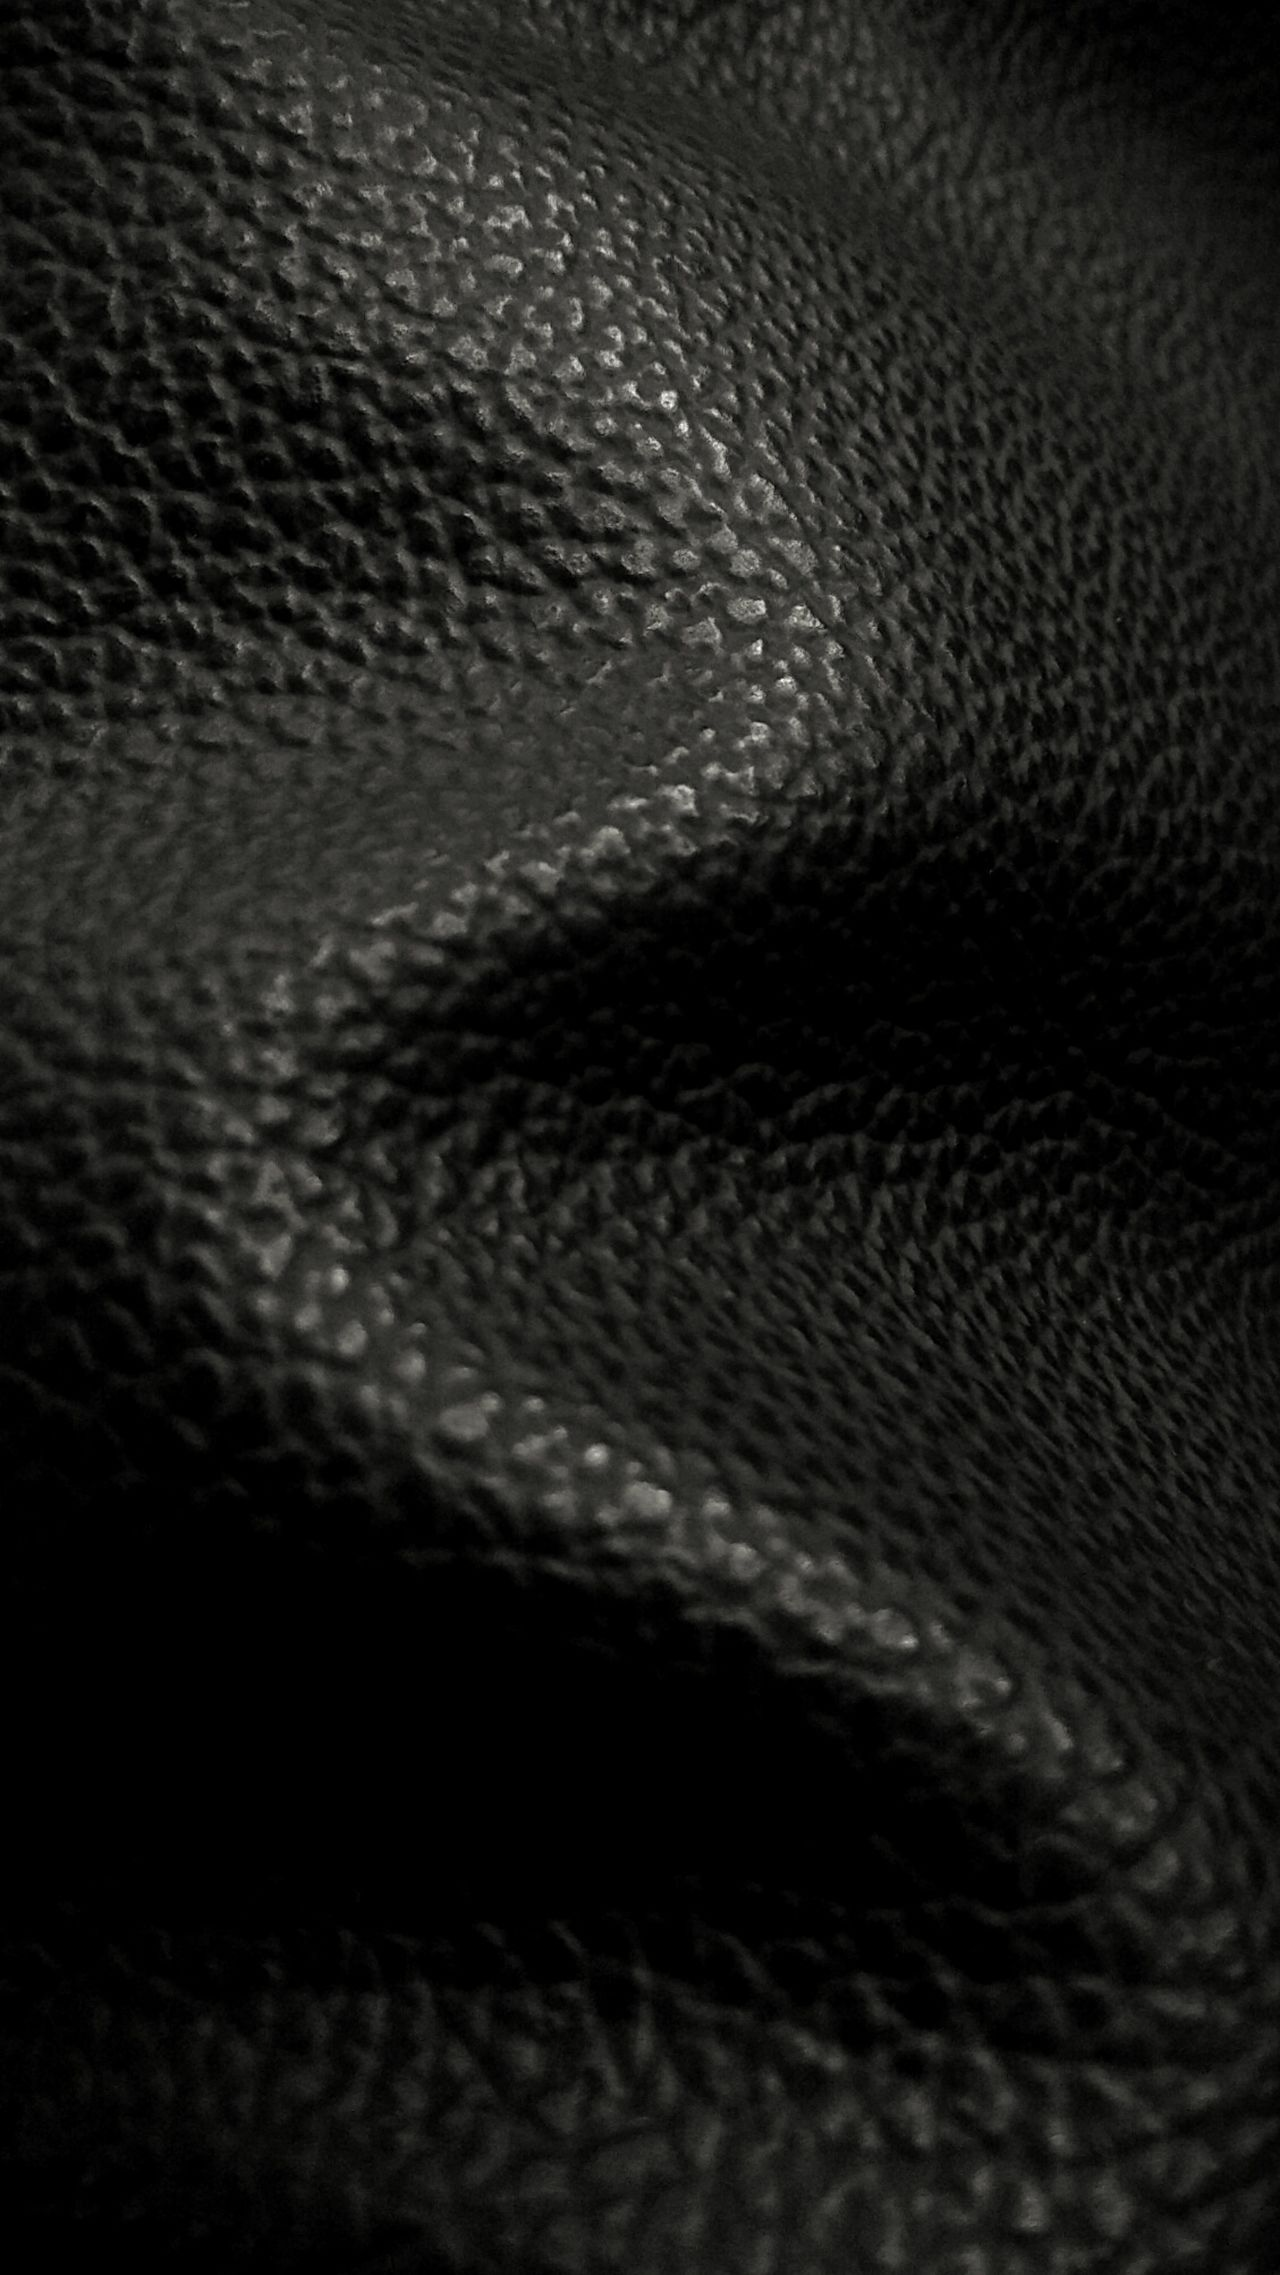 Leather texture Full Frame Animal Themes Animal Skin Blackandwhite Photography Black Background EyeEm Best Shots Black & White Blackandwhite EyeEm Gallery Simplicity Textured  Pattern Material Textured  Leather Close-up